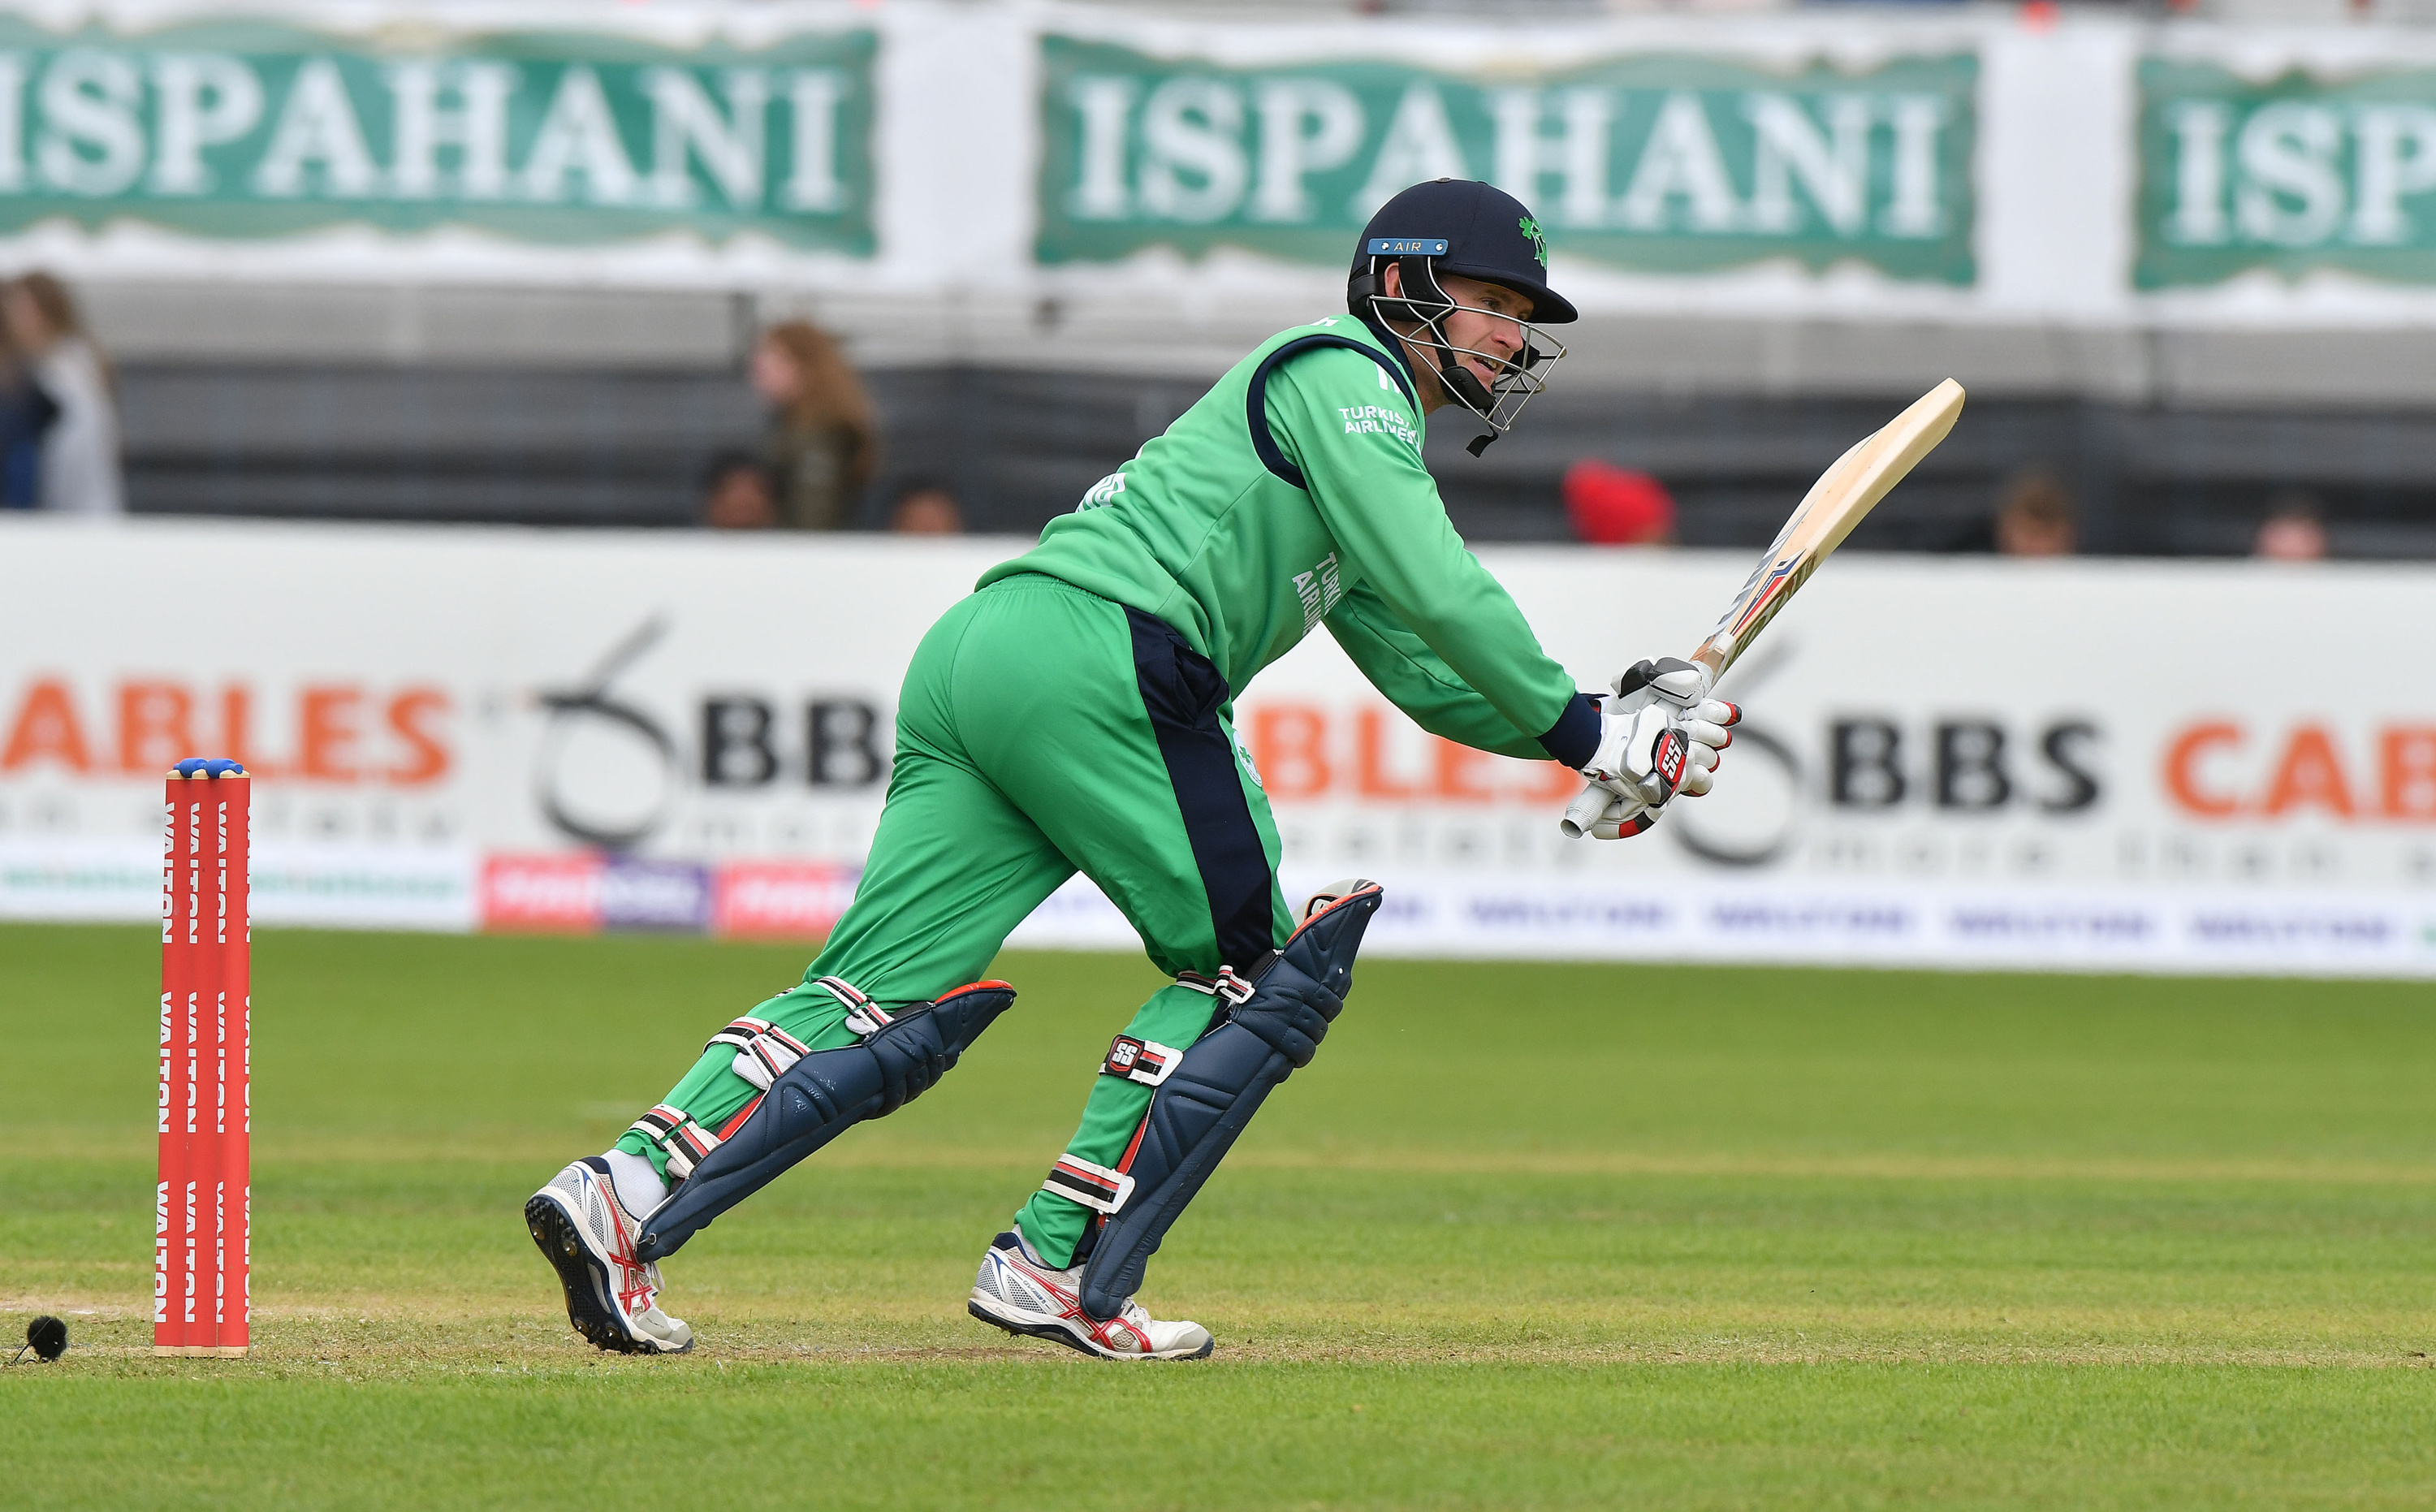 Ireland to play England in four-day Test